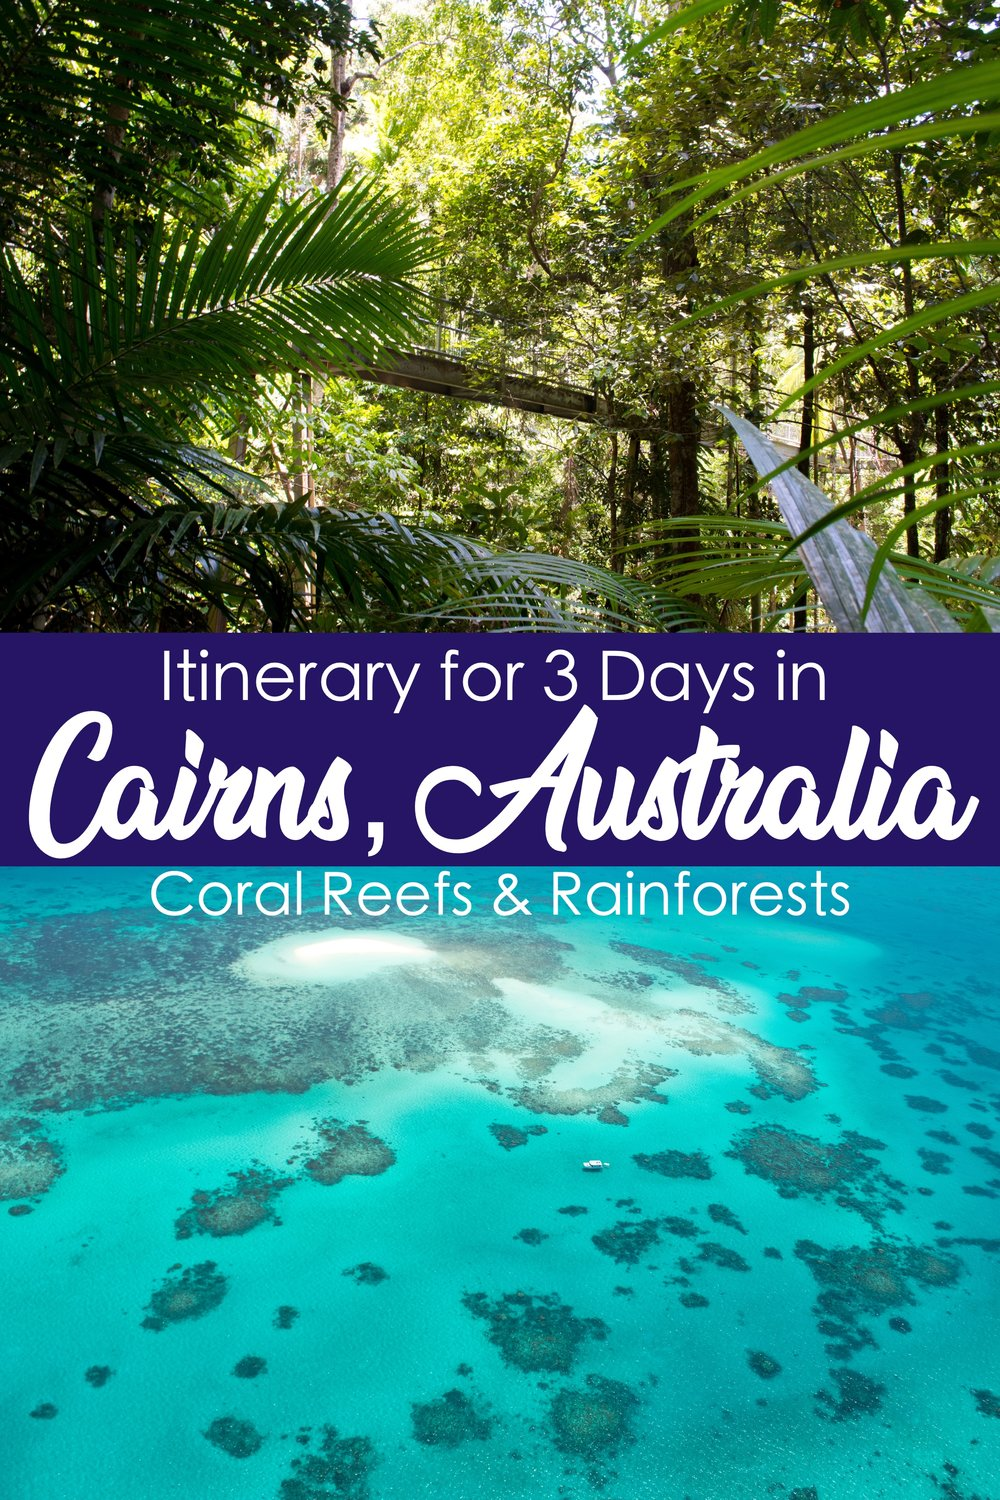 Itinerary for 3 Days in Cairns, Australia: Coral Reefs and Rainforests.  Cairns is the gateway to both the Great Barrier Reef and the Daintree Rainforest. #Cairns #Australia #Queensland  #TropicalNorth